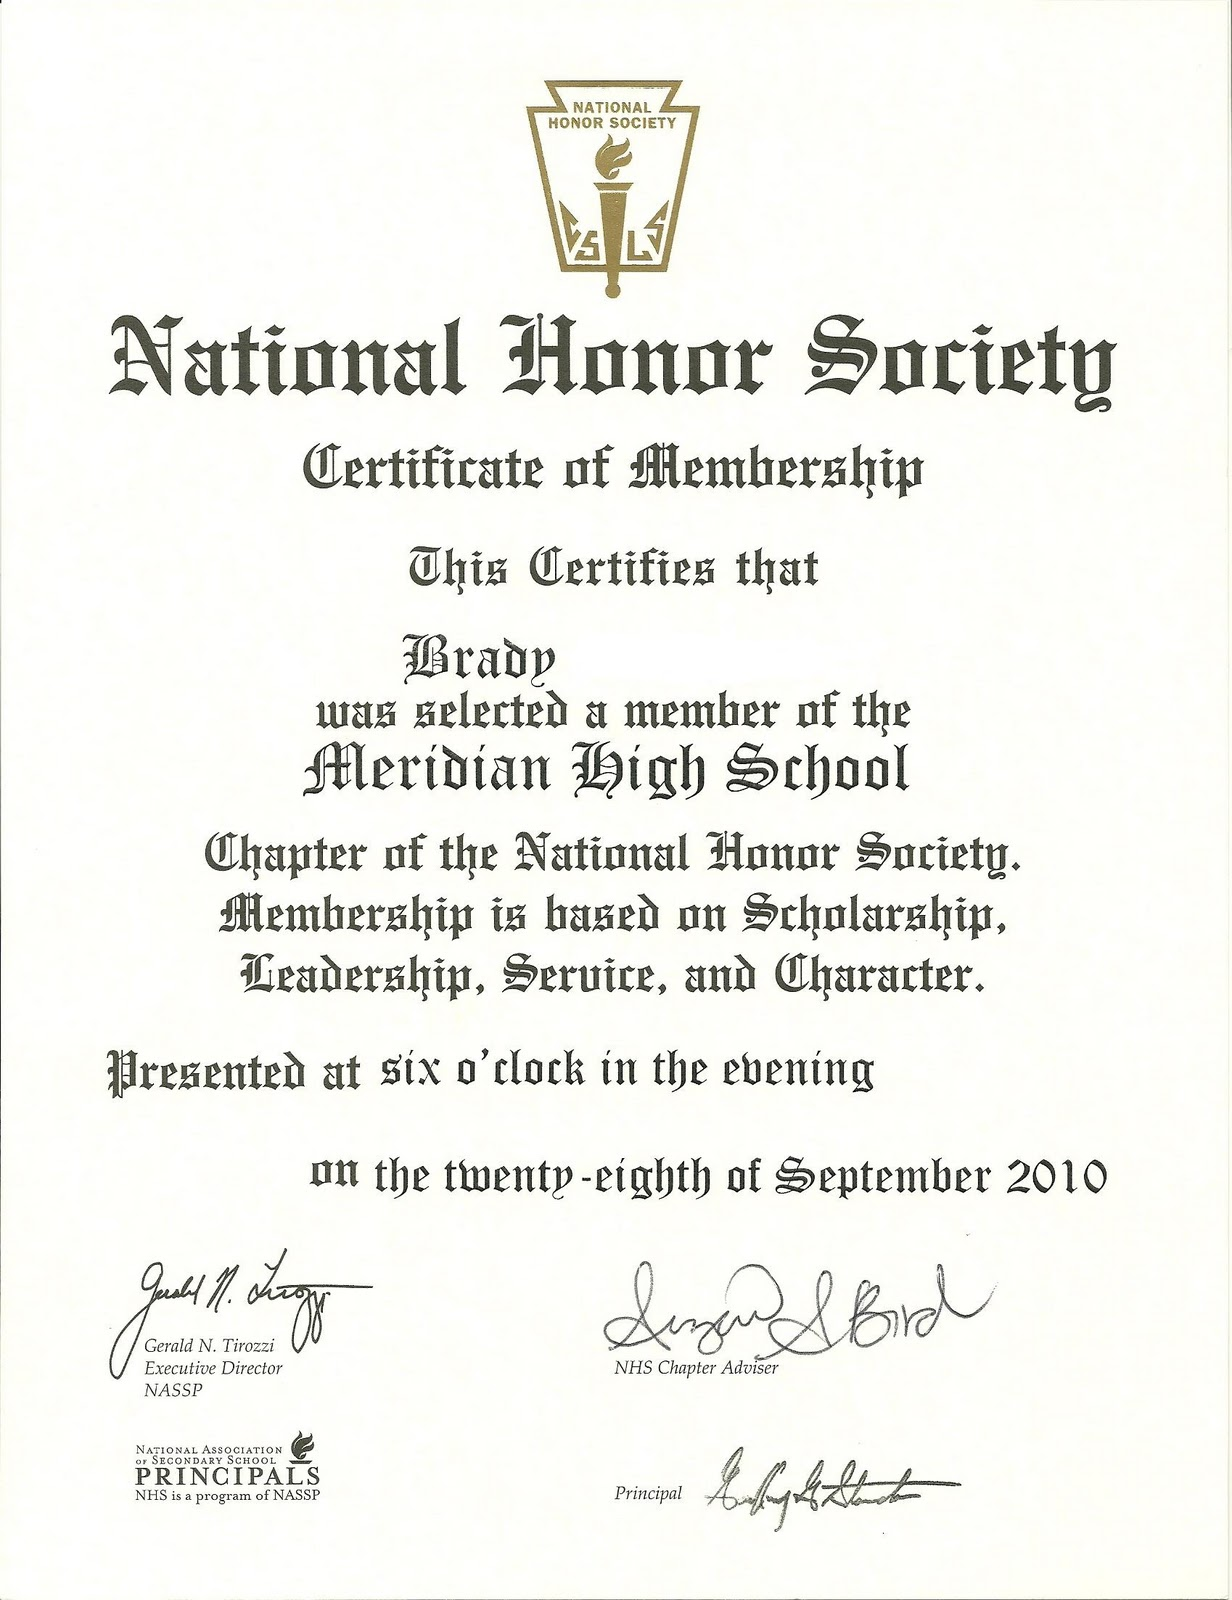 National honor society certificate of membership template.